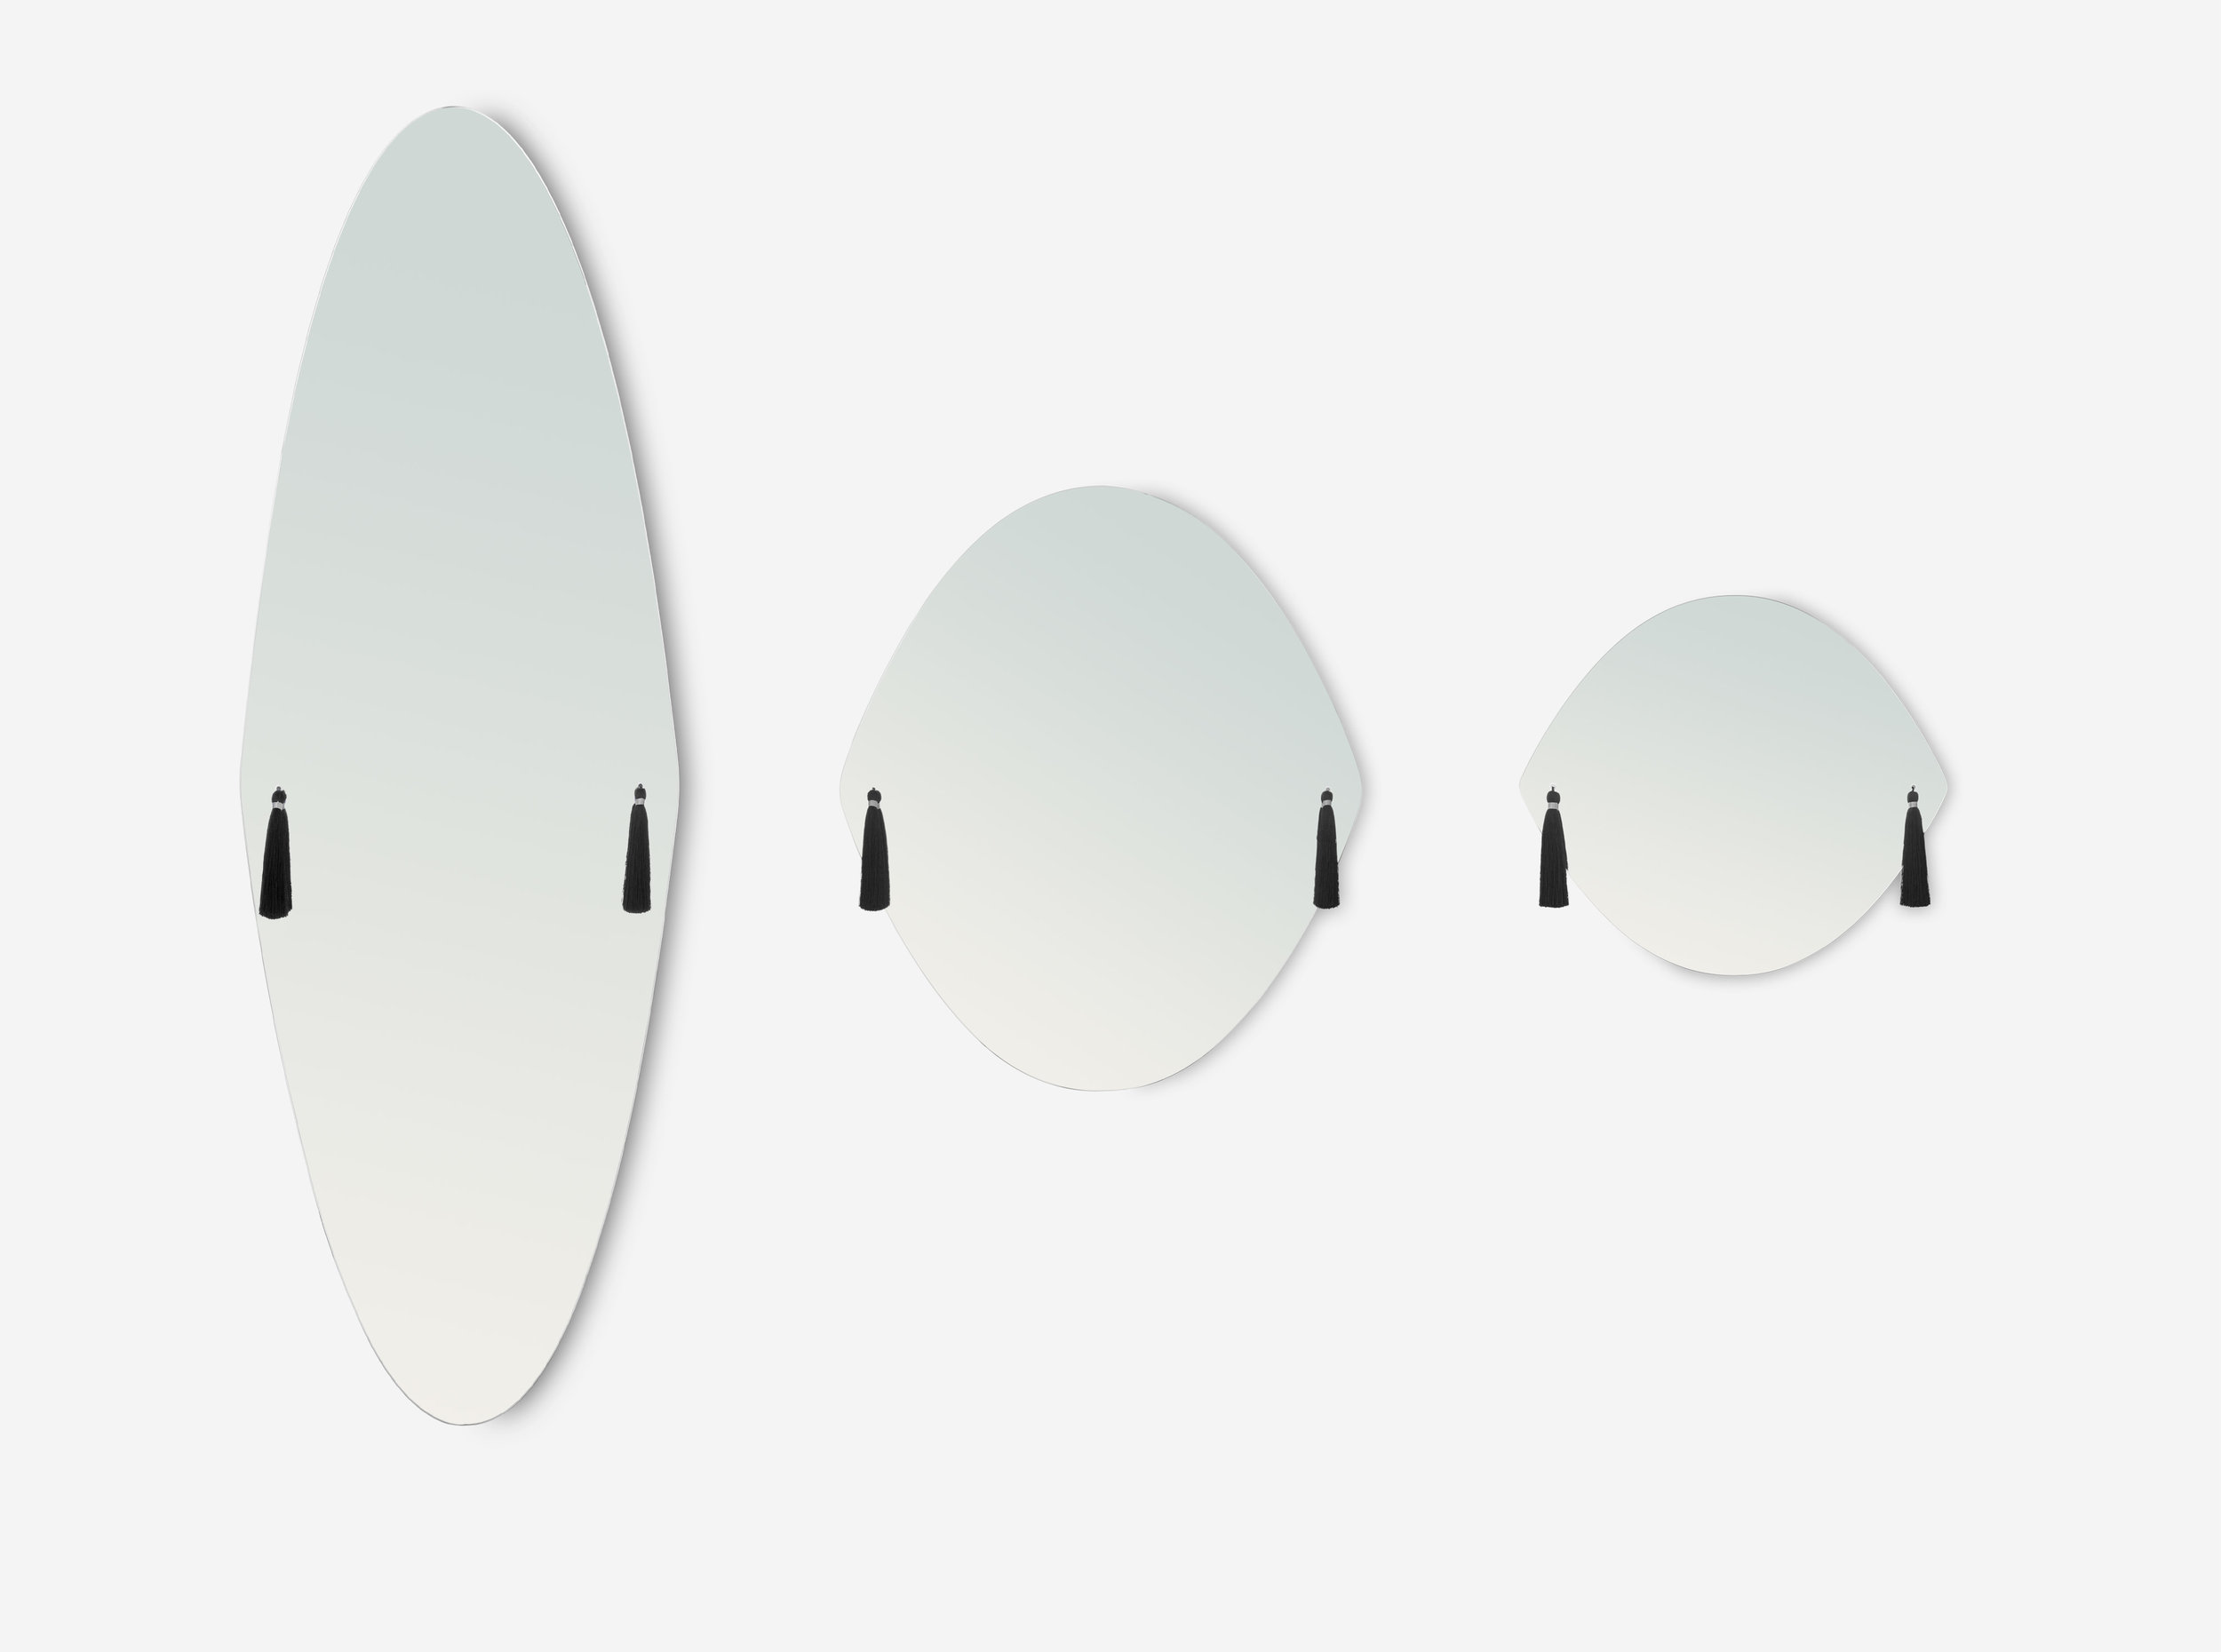 The 'Panache'mirrors by Constance Guisset for French label Petite Friture. The mirrors are available in the three shapes shown and feature tassels in a choice of colours.